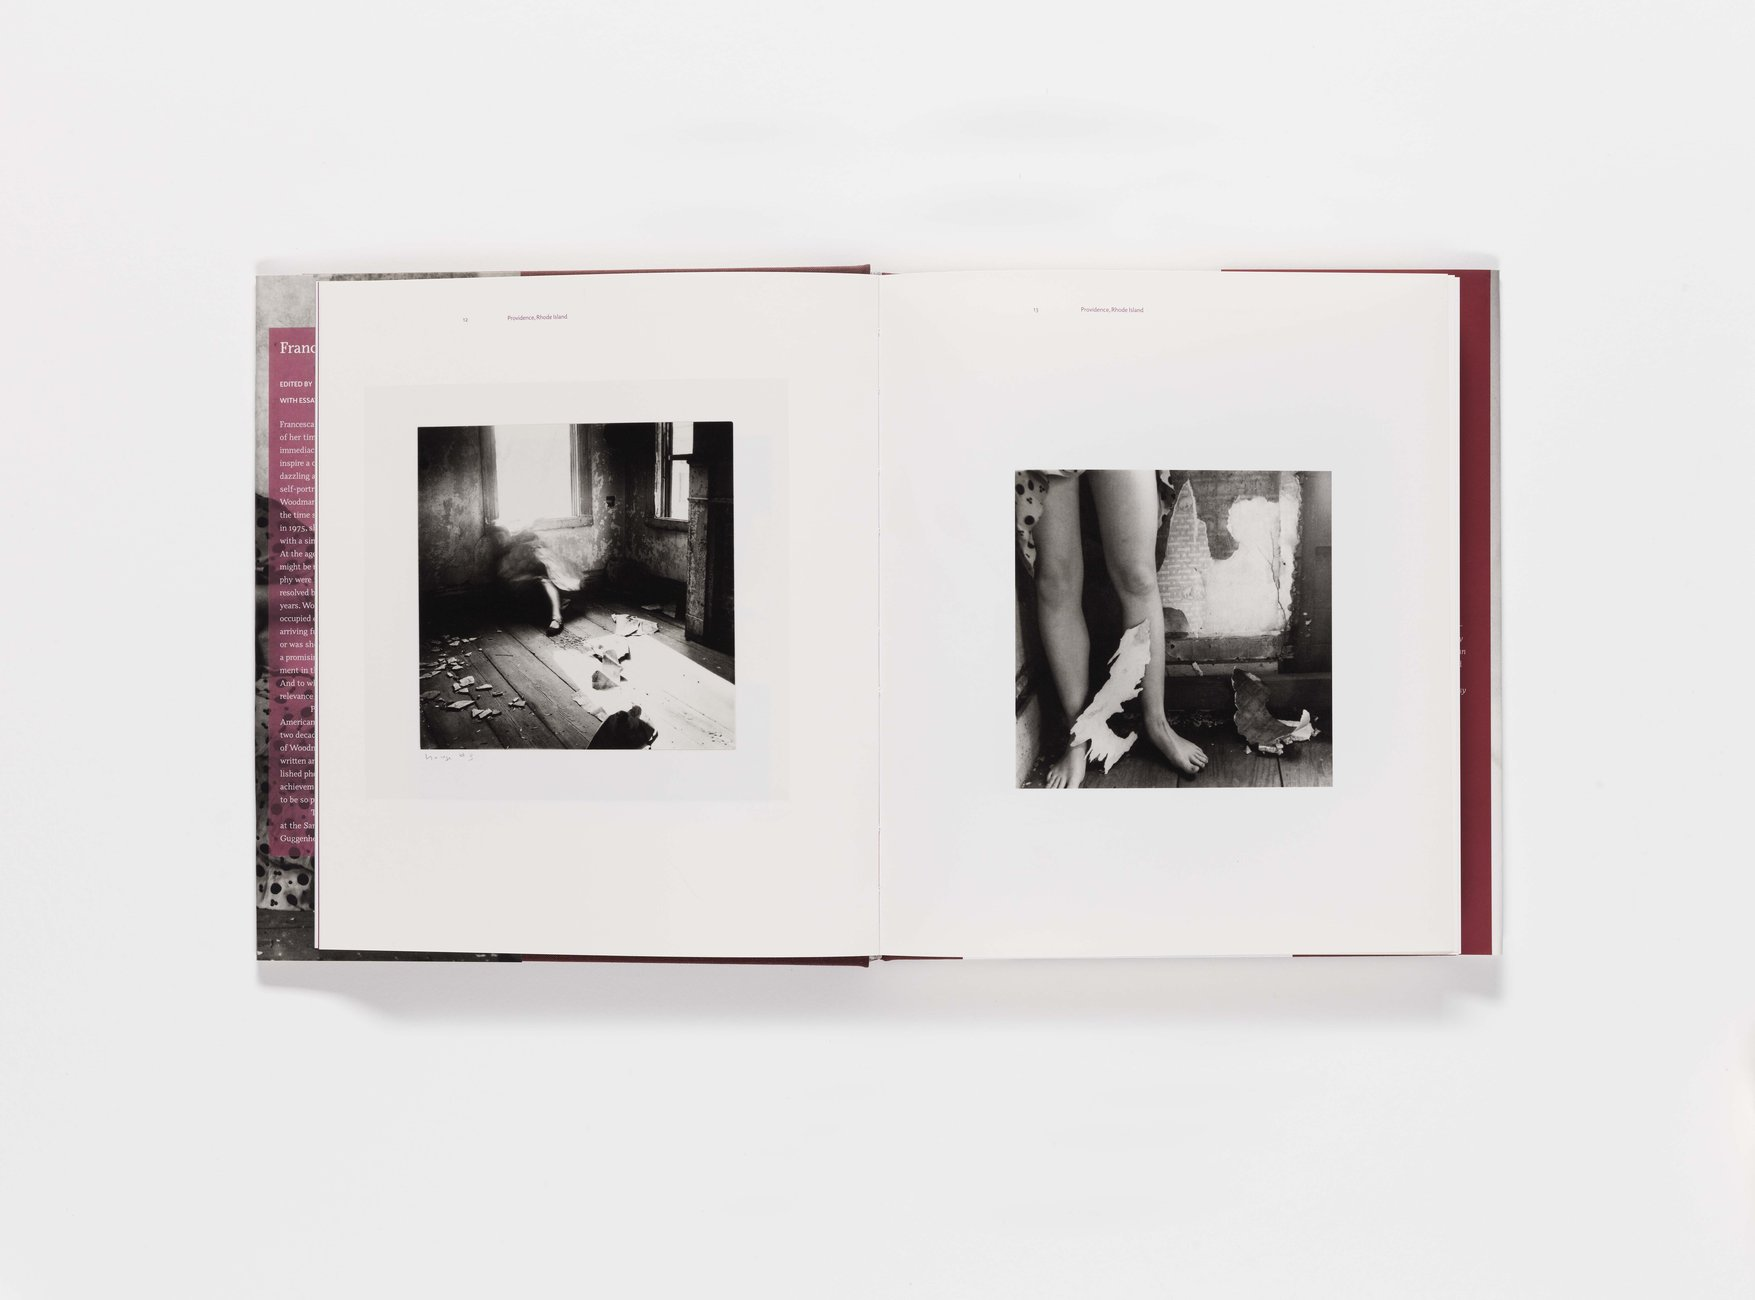 Francesca Woodman publication pages 12-13